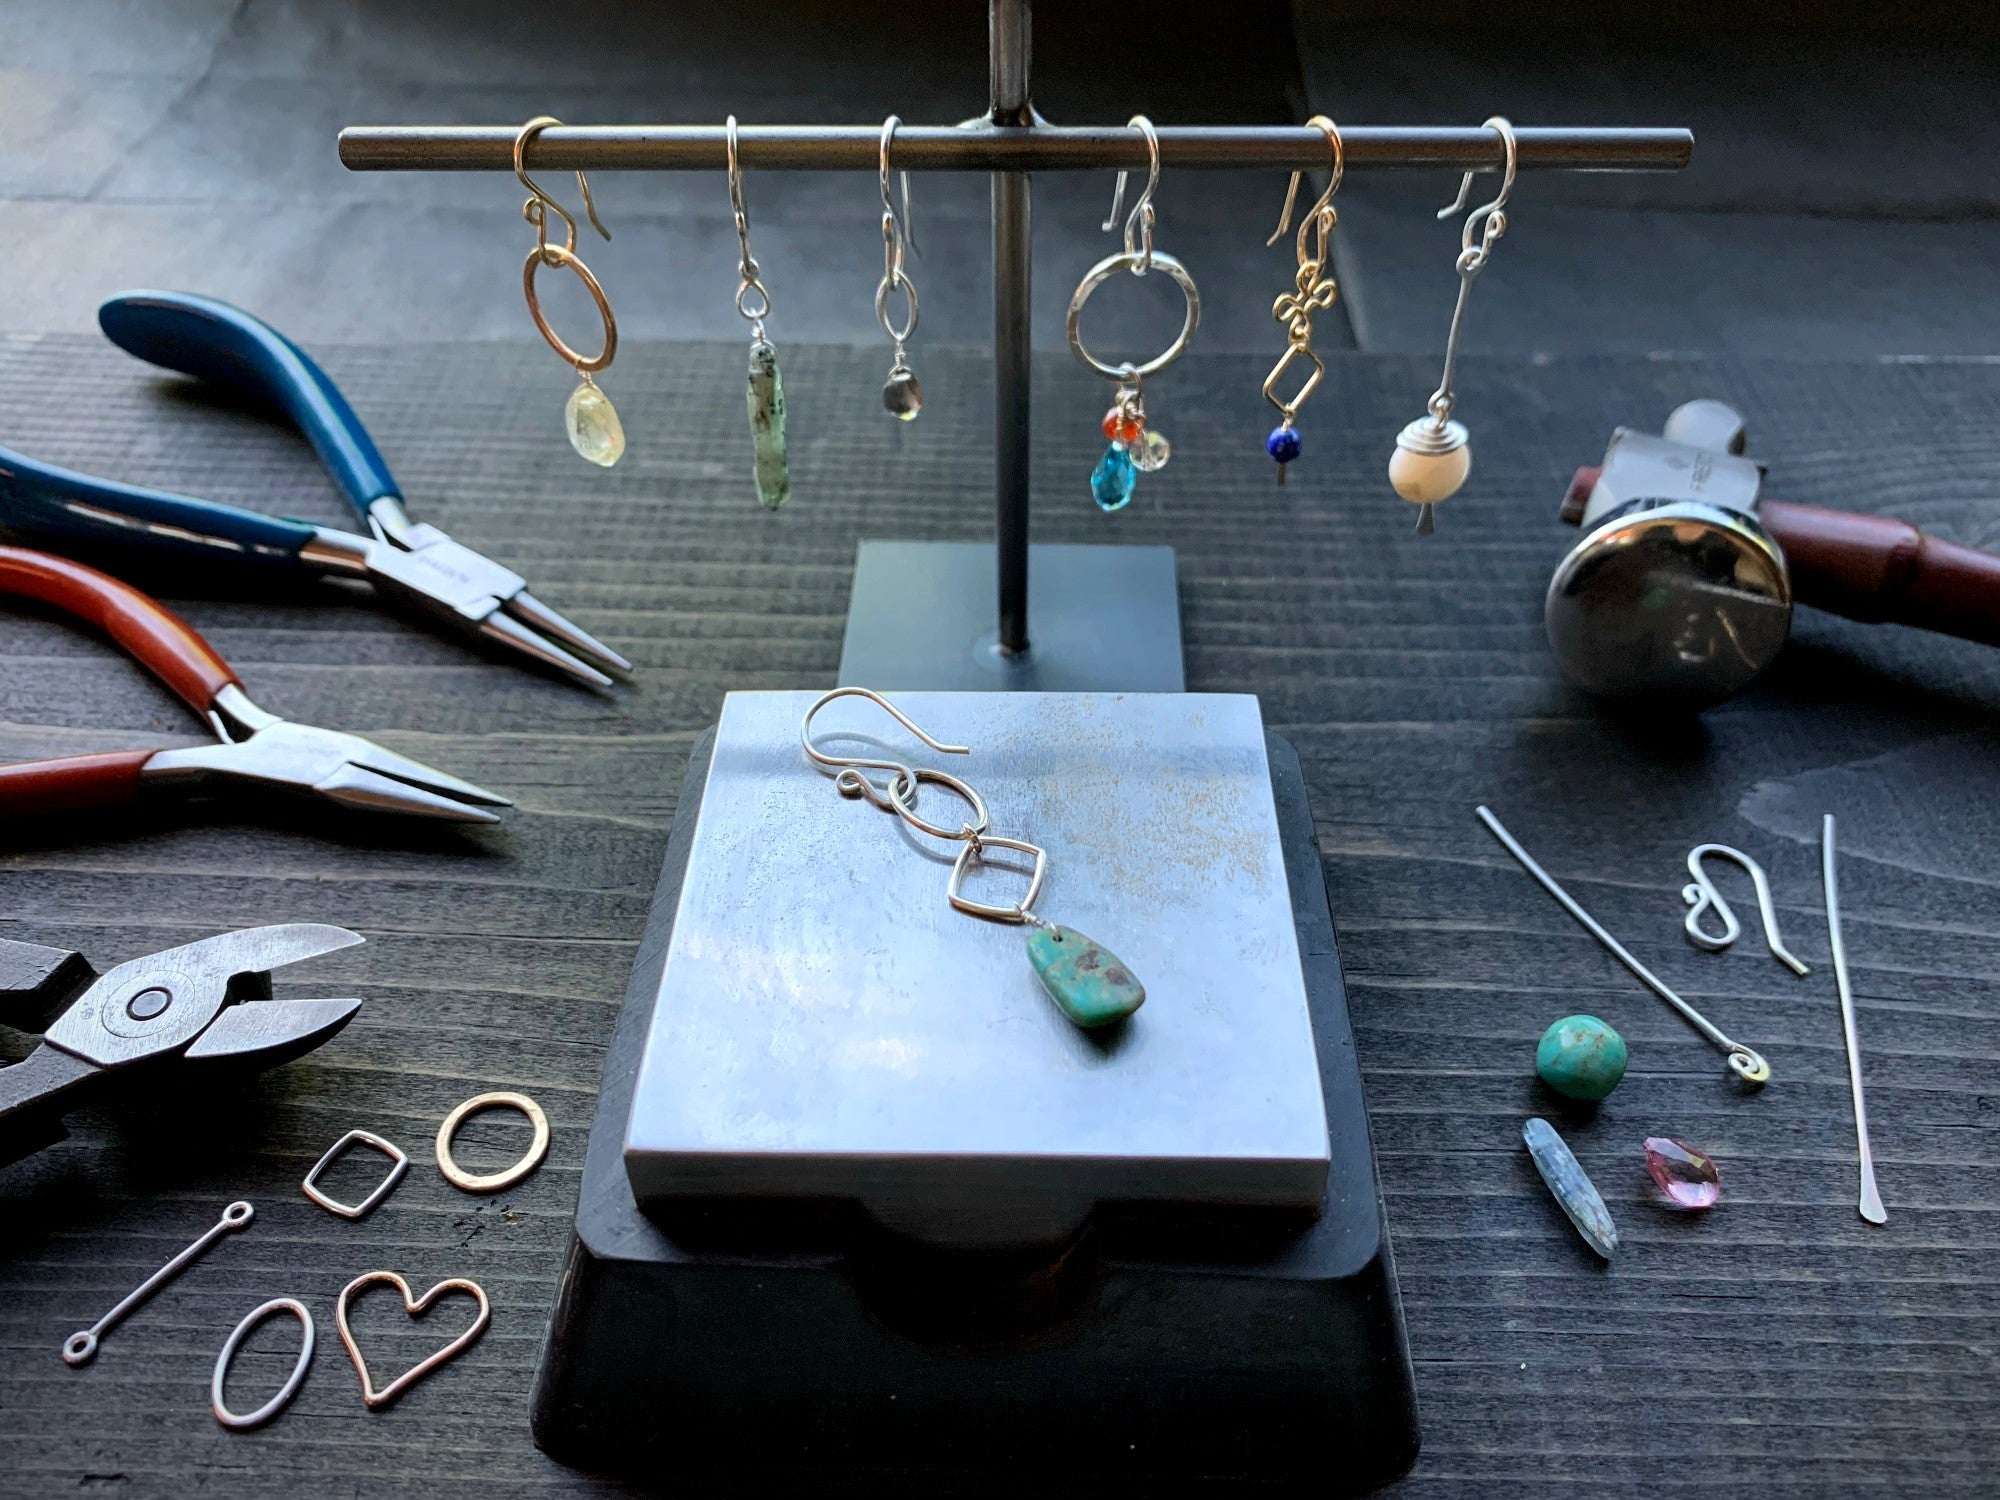 Earring Design Class - Jacob Williams Winery